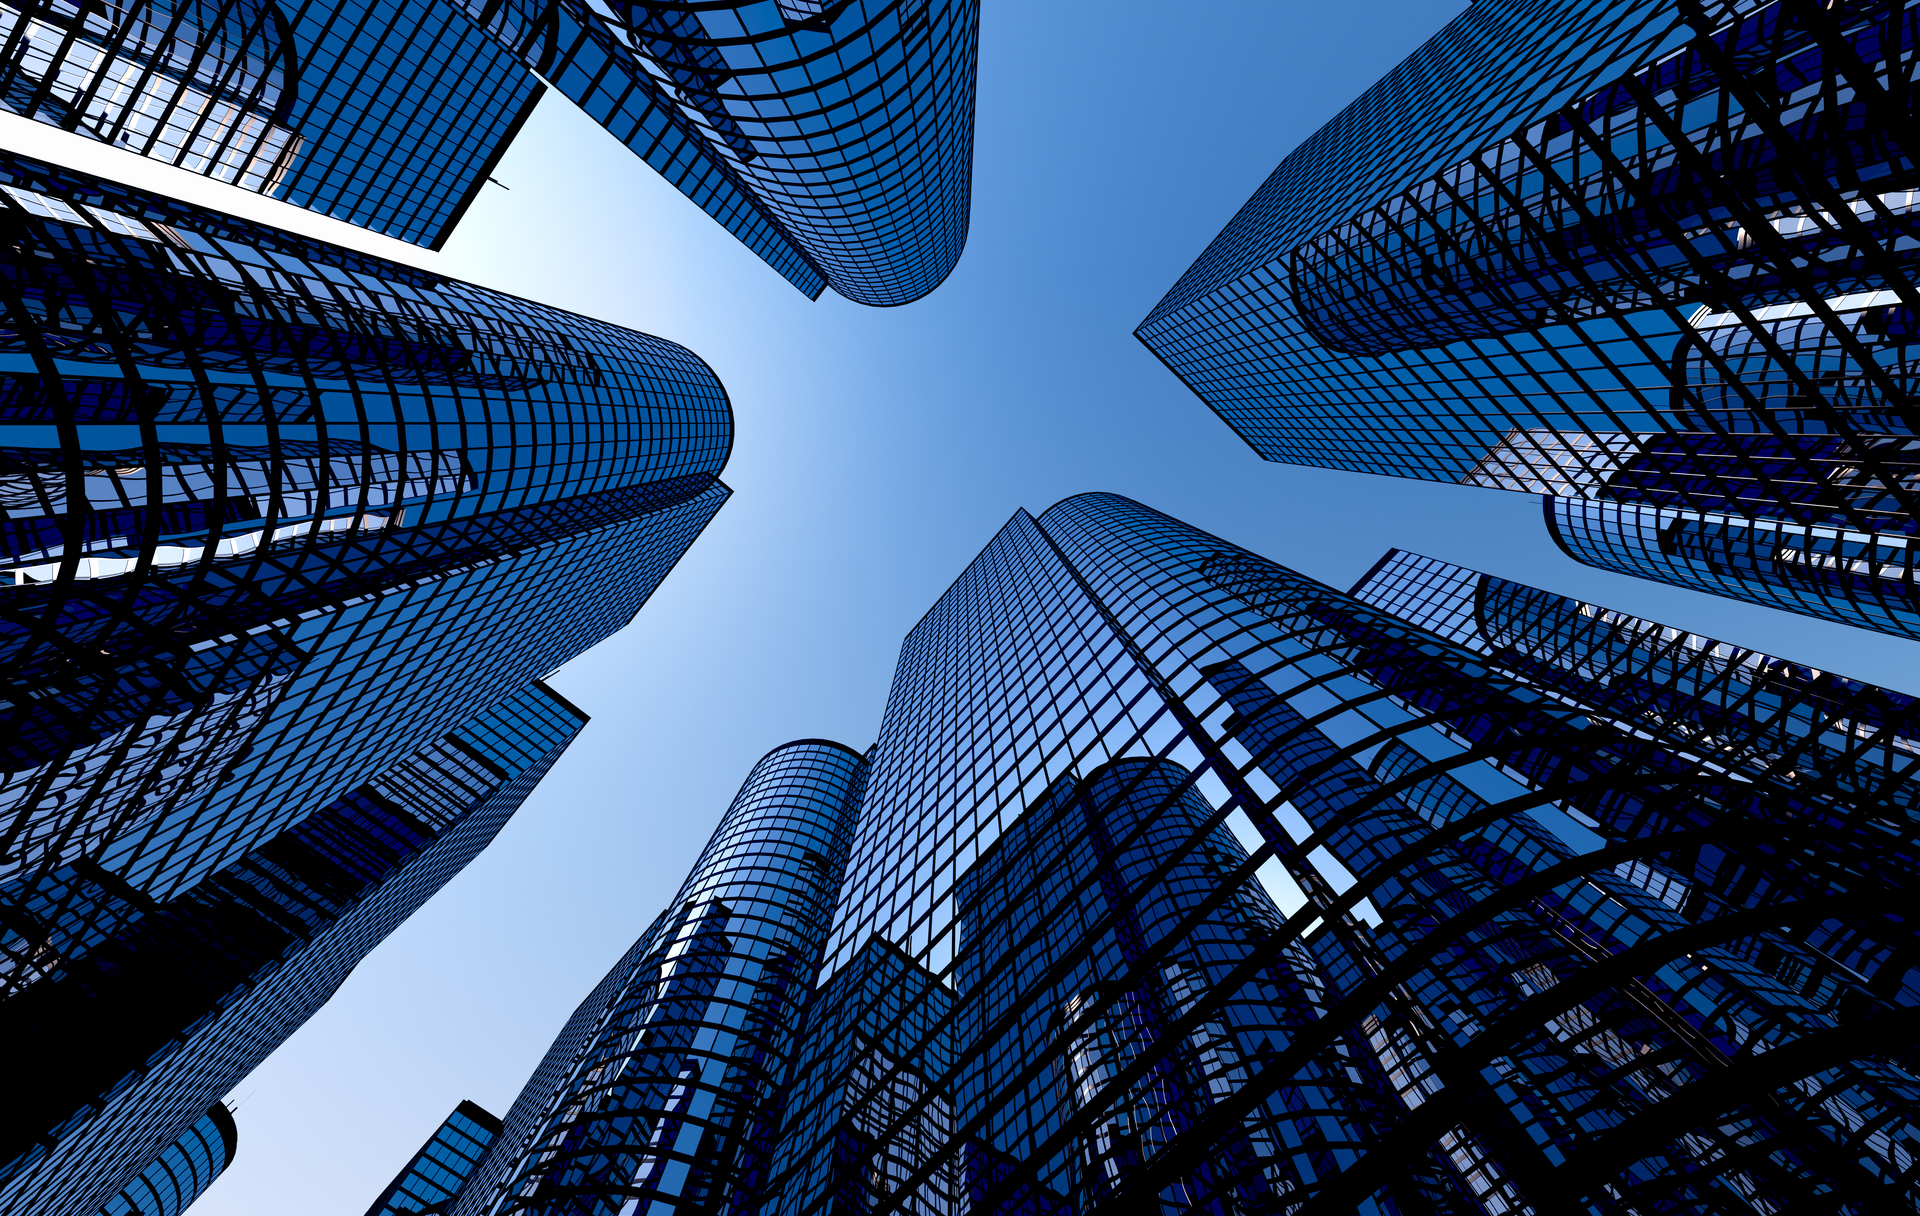 Low angle shot of modern glass city buildings with clear sky background